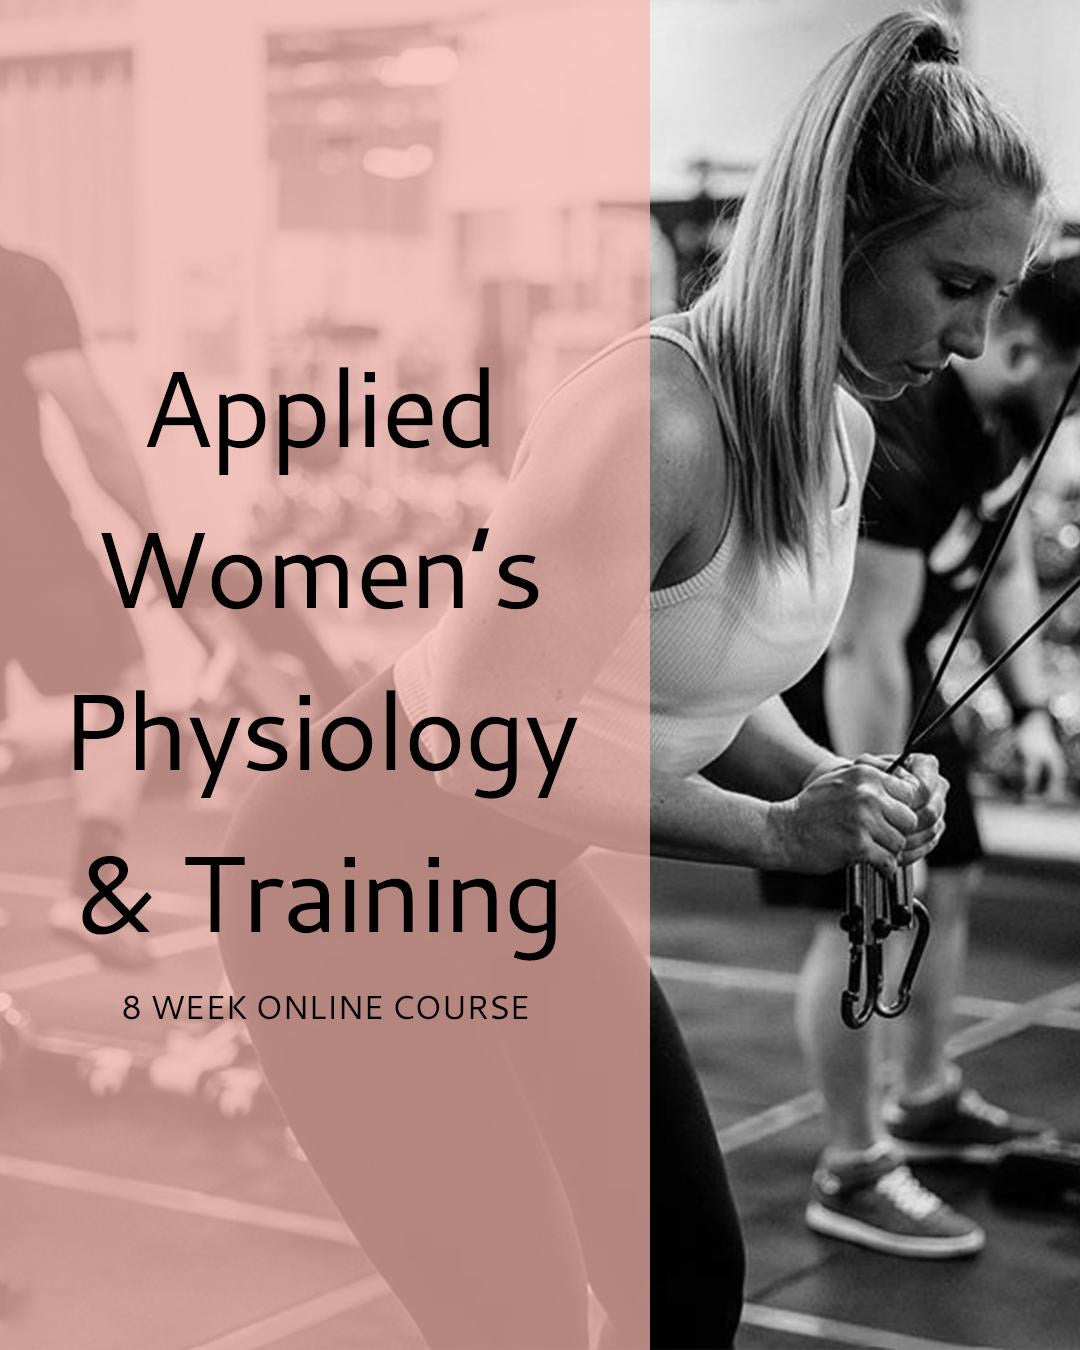 Applied Women's Physiology & Training 8 Week Online Course